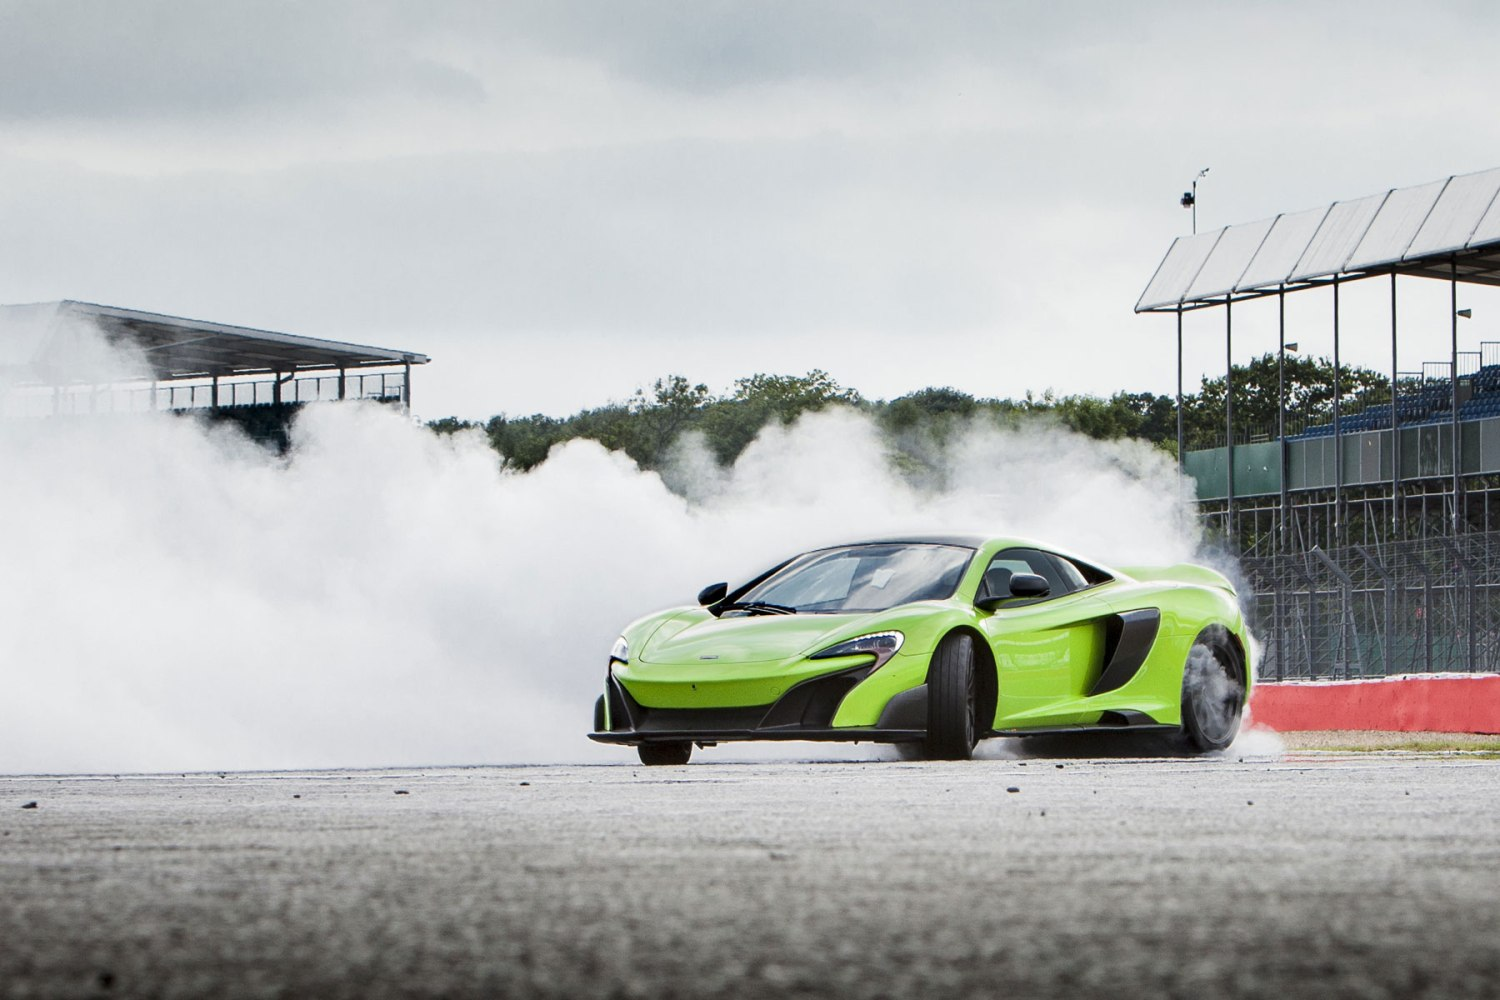 McLaren 675LT – 2.9 seconds